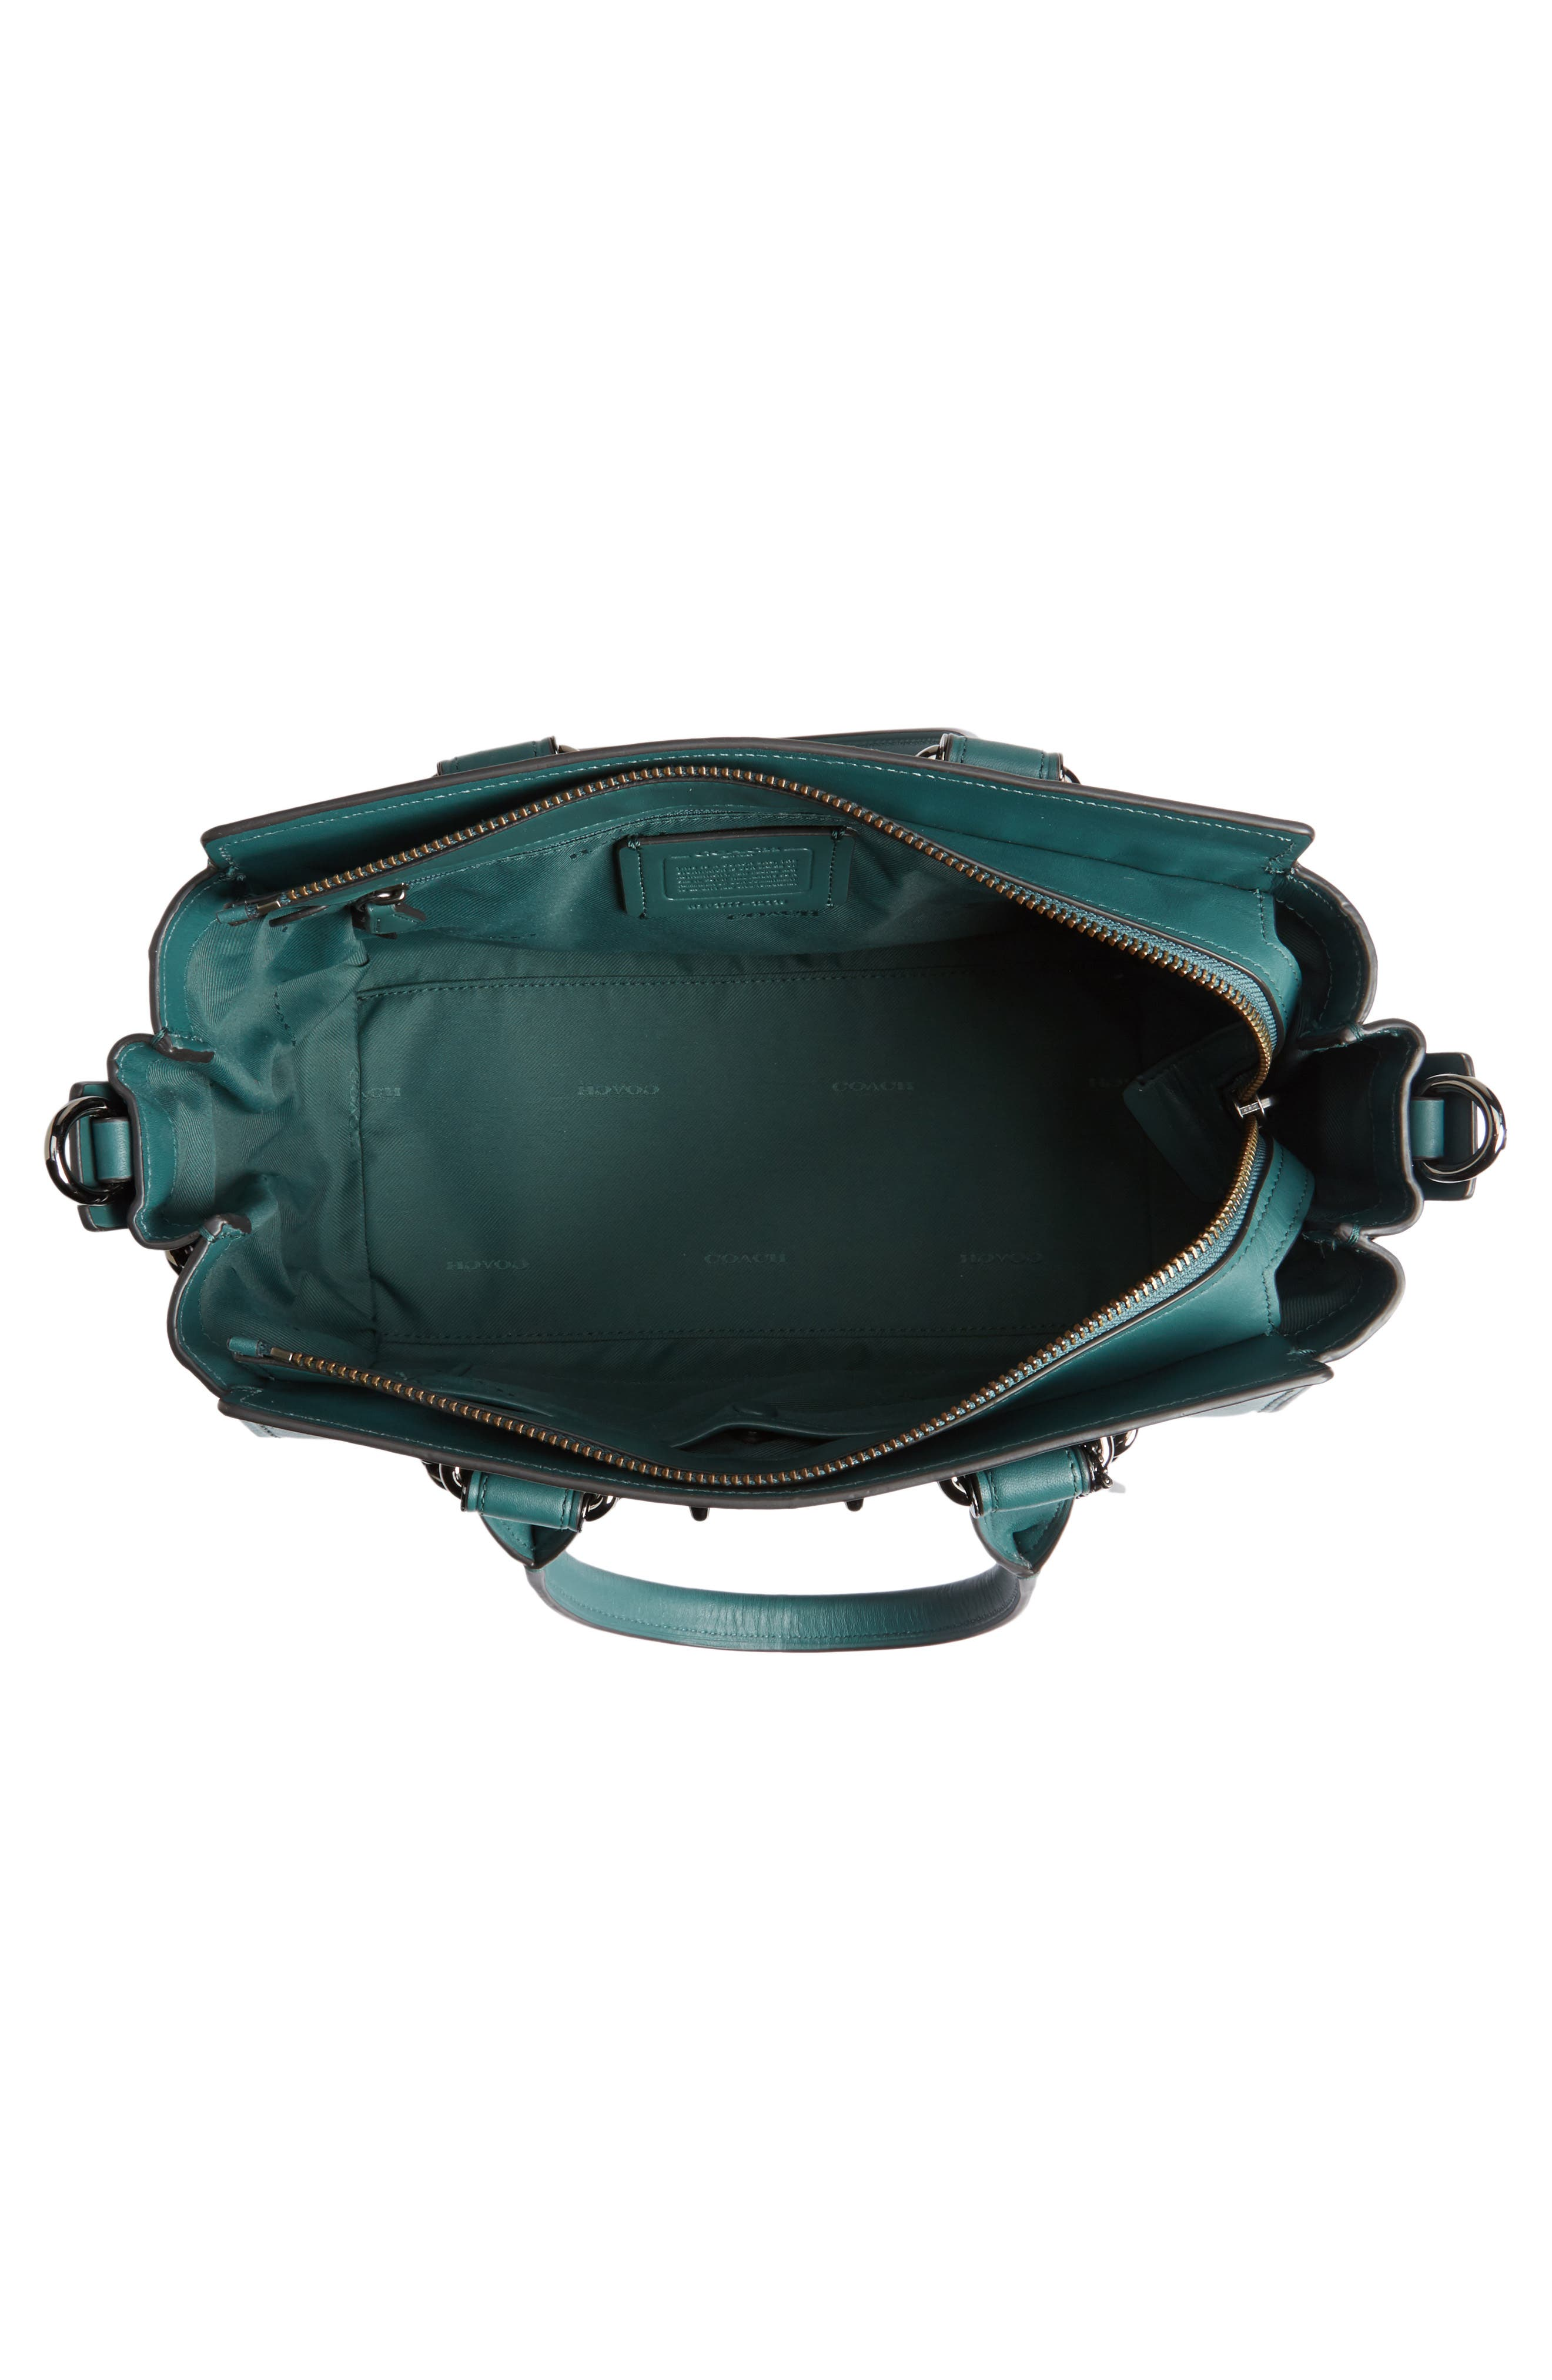 ID Bracelet Swagger 27 Calfskin Leather Satchel,                             Alternate thumbnail 3, color,                             Dark Turquoise